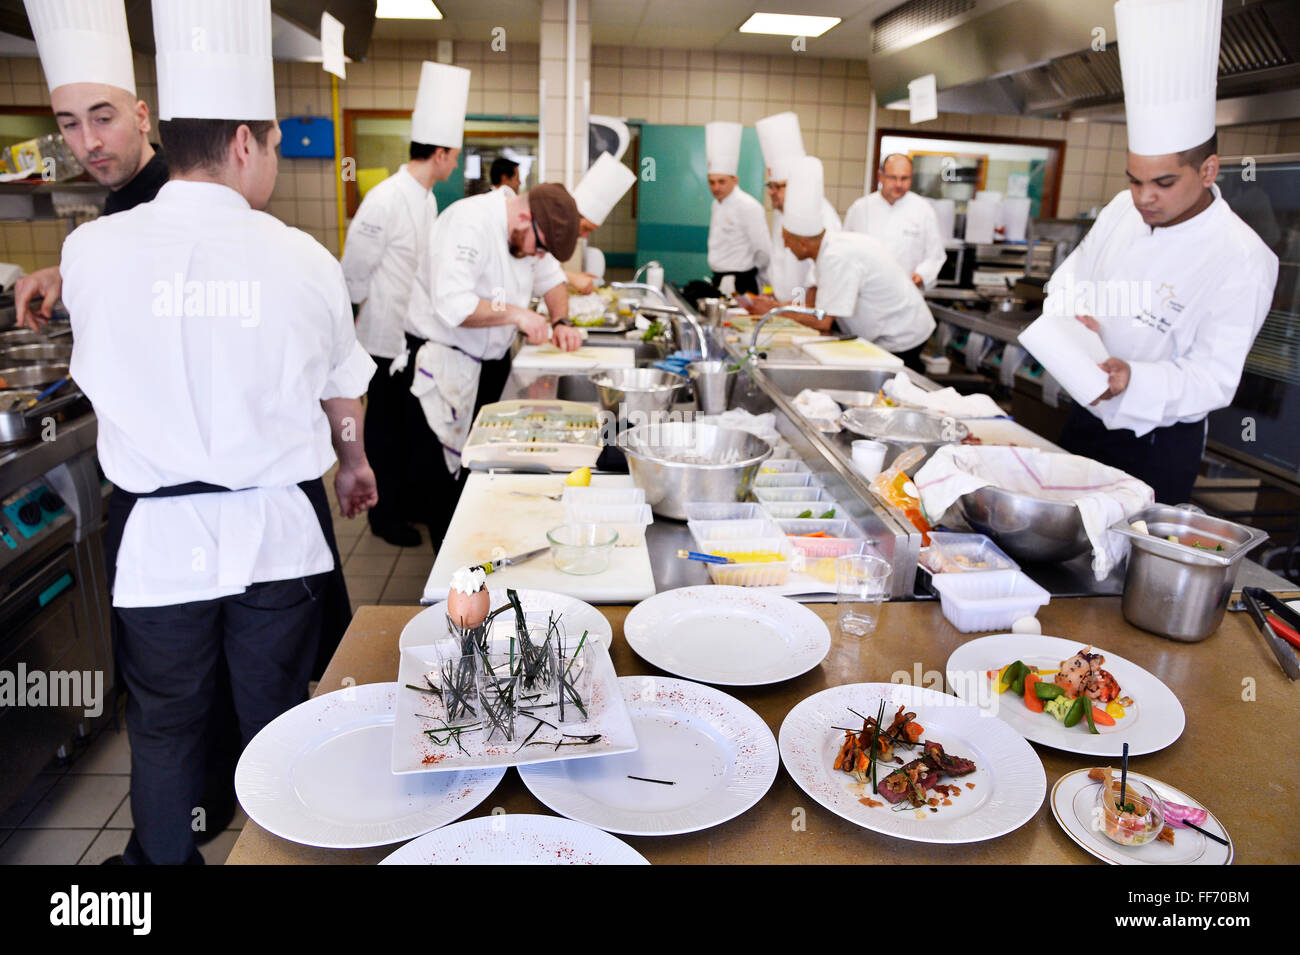 French catering food service - Stock Image